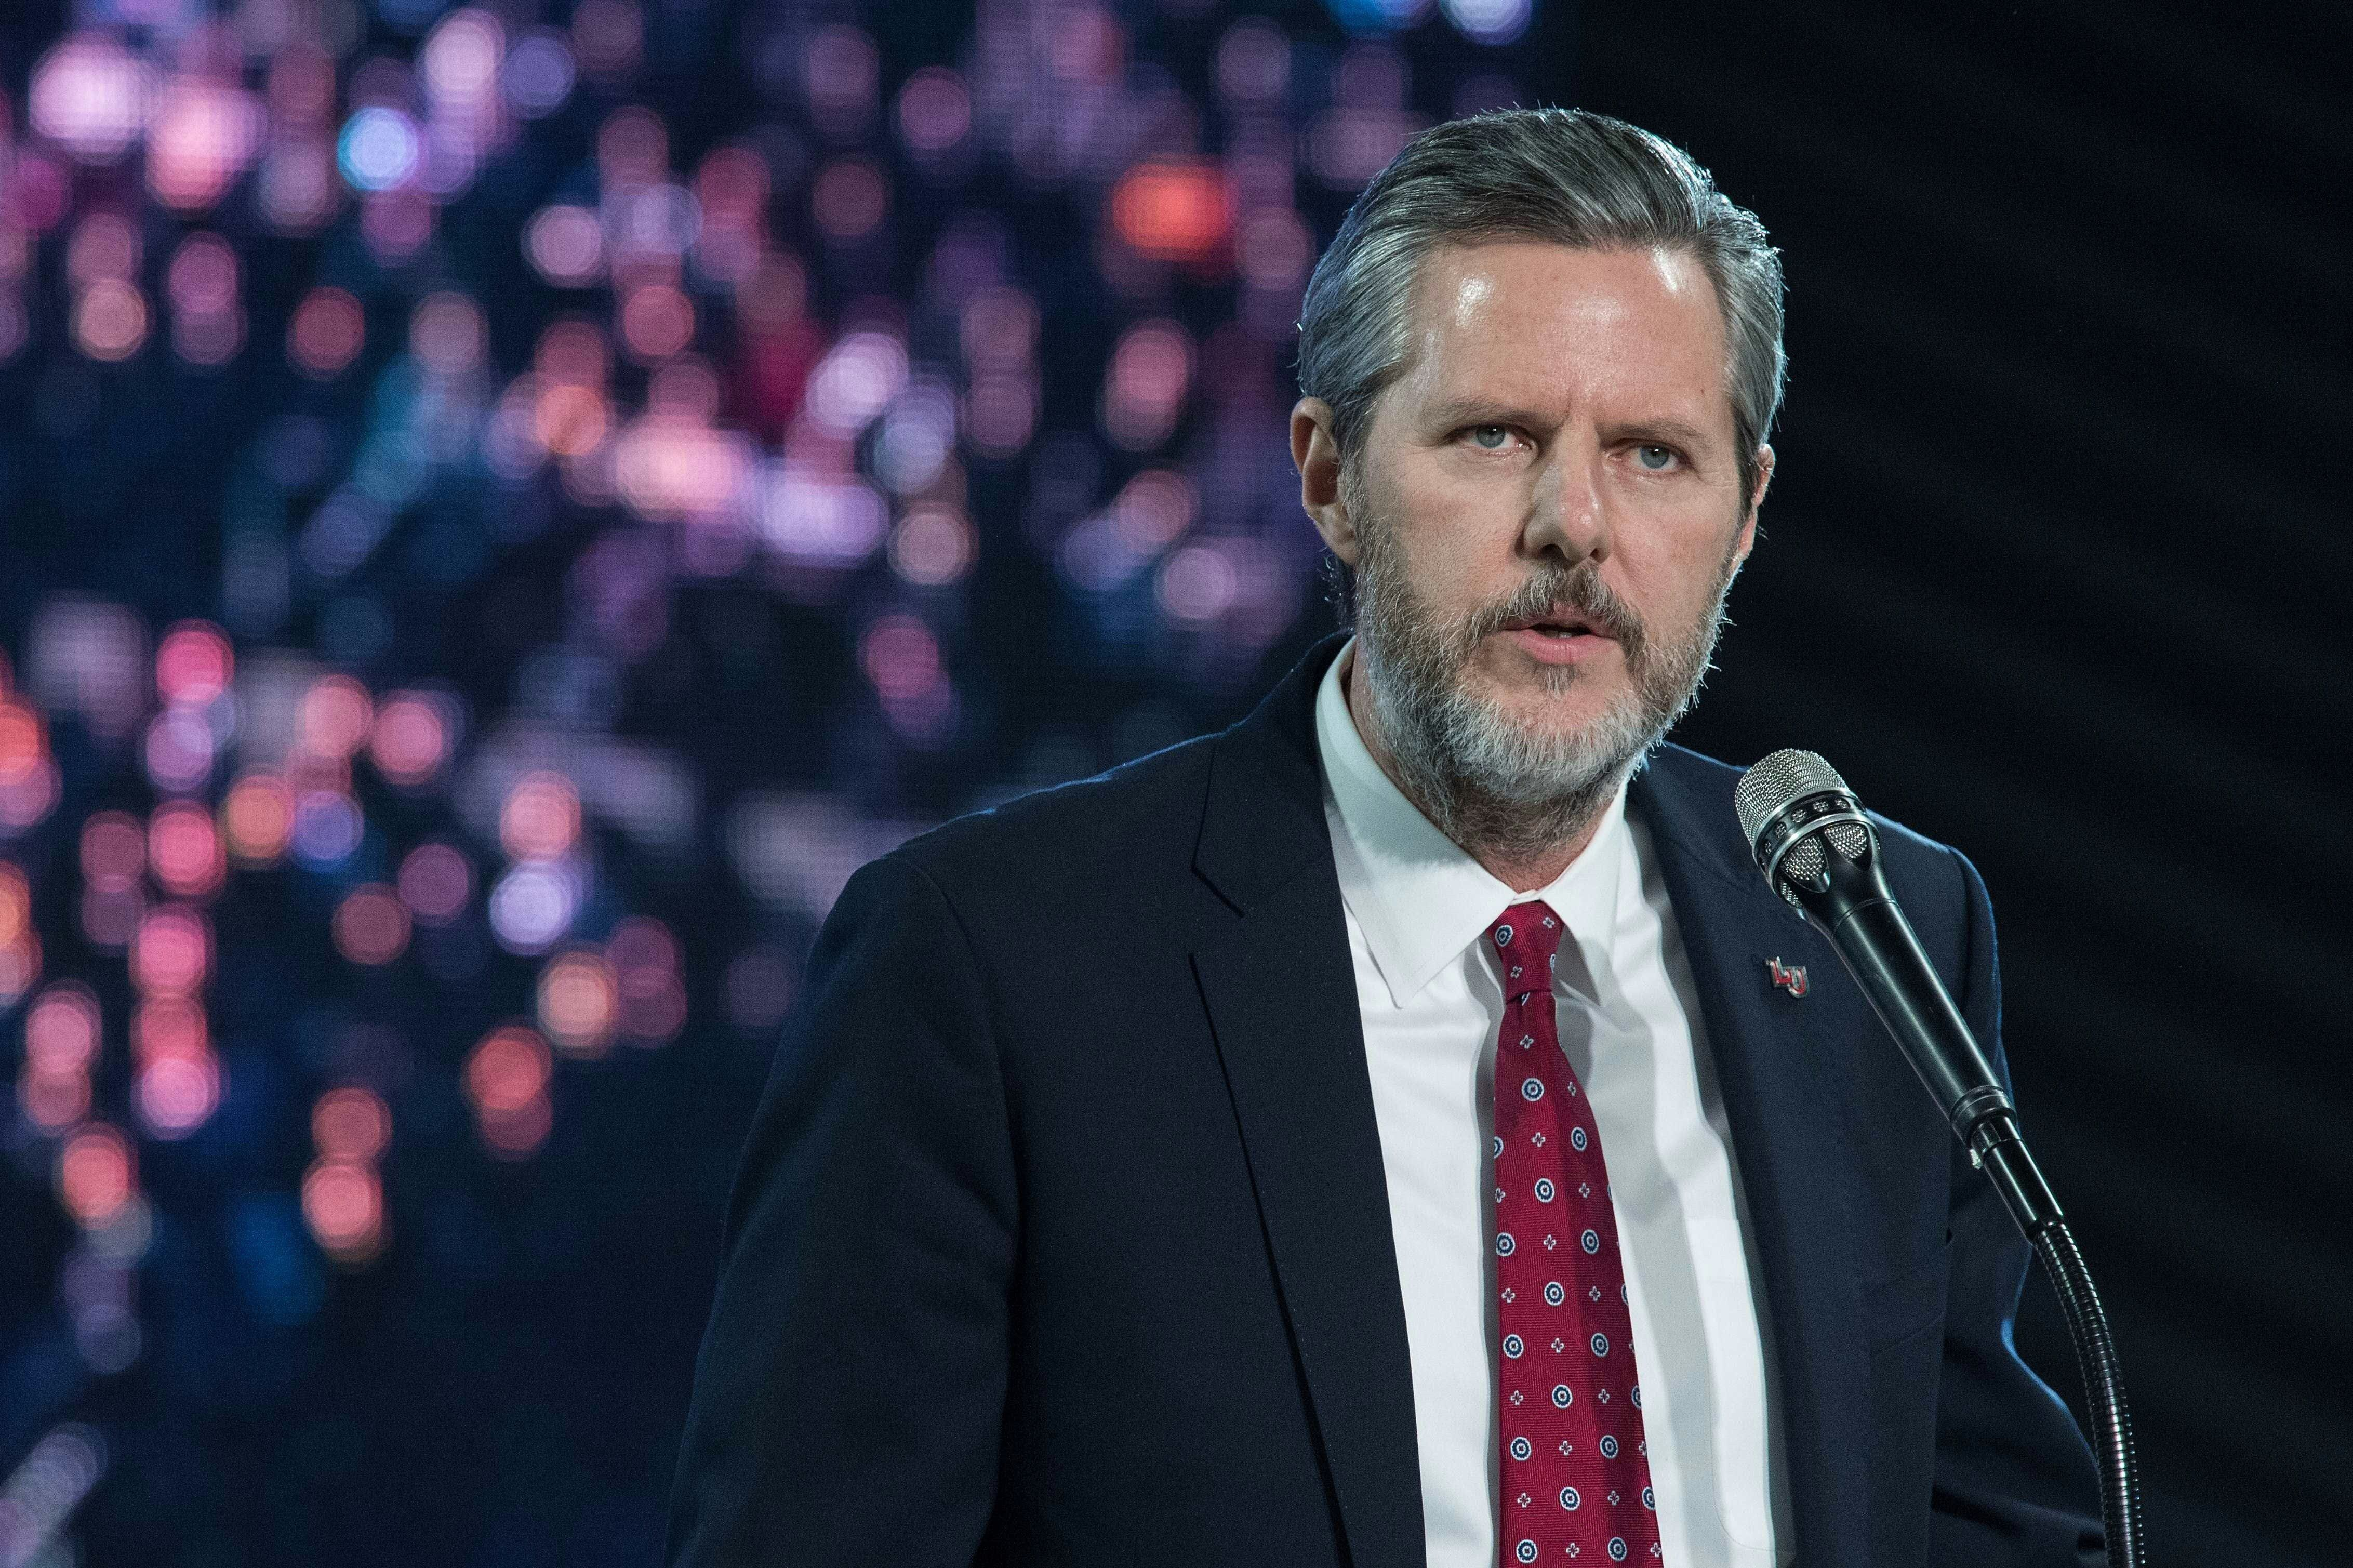 Liberty University president Jerry Falwell Jr. introduces US Republican presidential candidate Donald Trump at a rally at Liberty University, the world's largest Christian university, in Lynchburg, Virginia, on January 18, 2016.  / AFP / NICHOLAS KAMM        (Photo credit should read NICHOLAS KAMM/AFP/Getty Images)